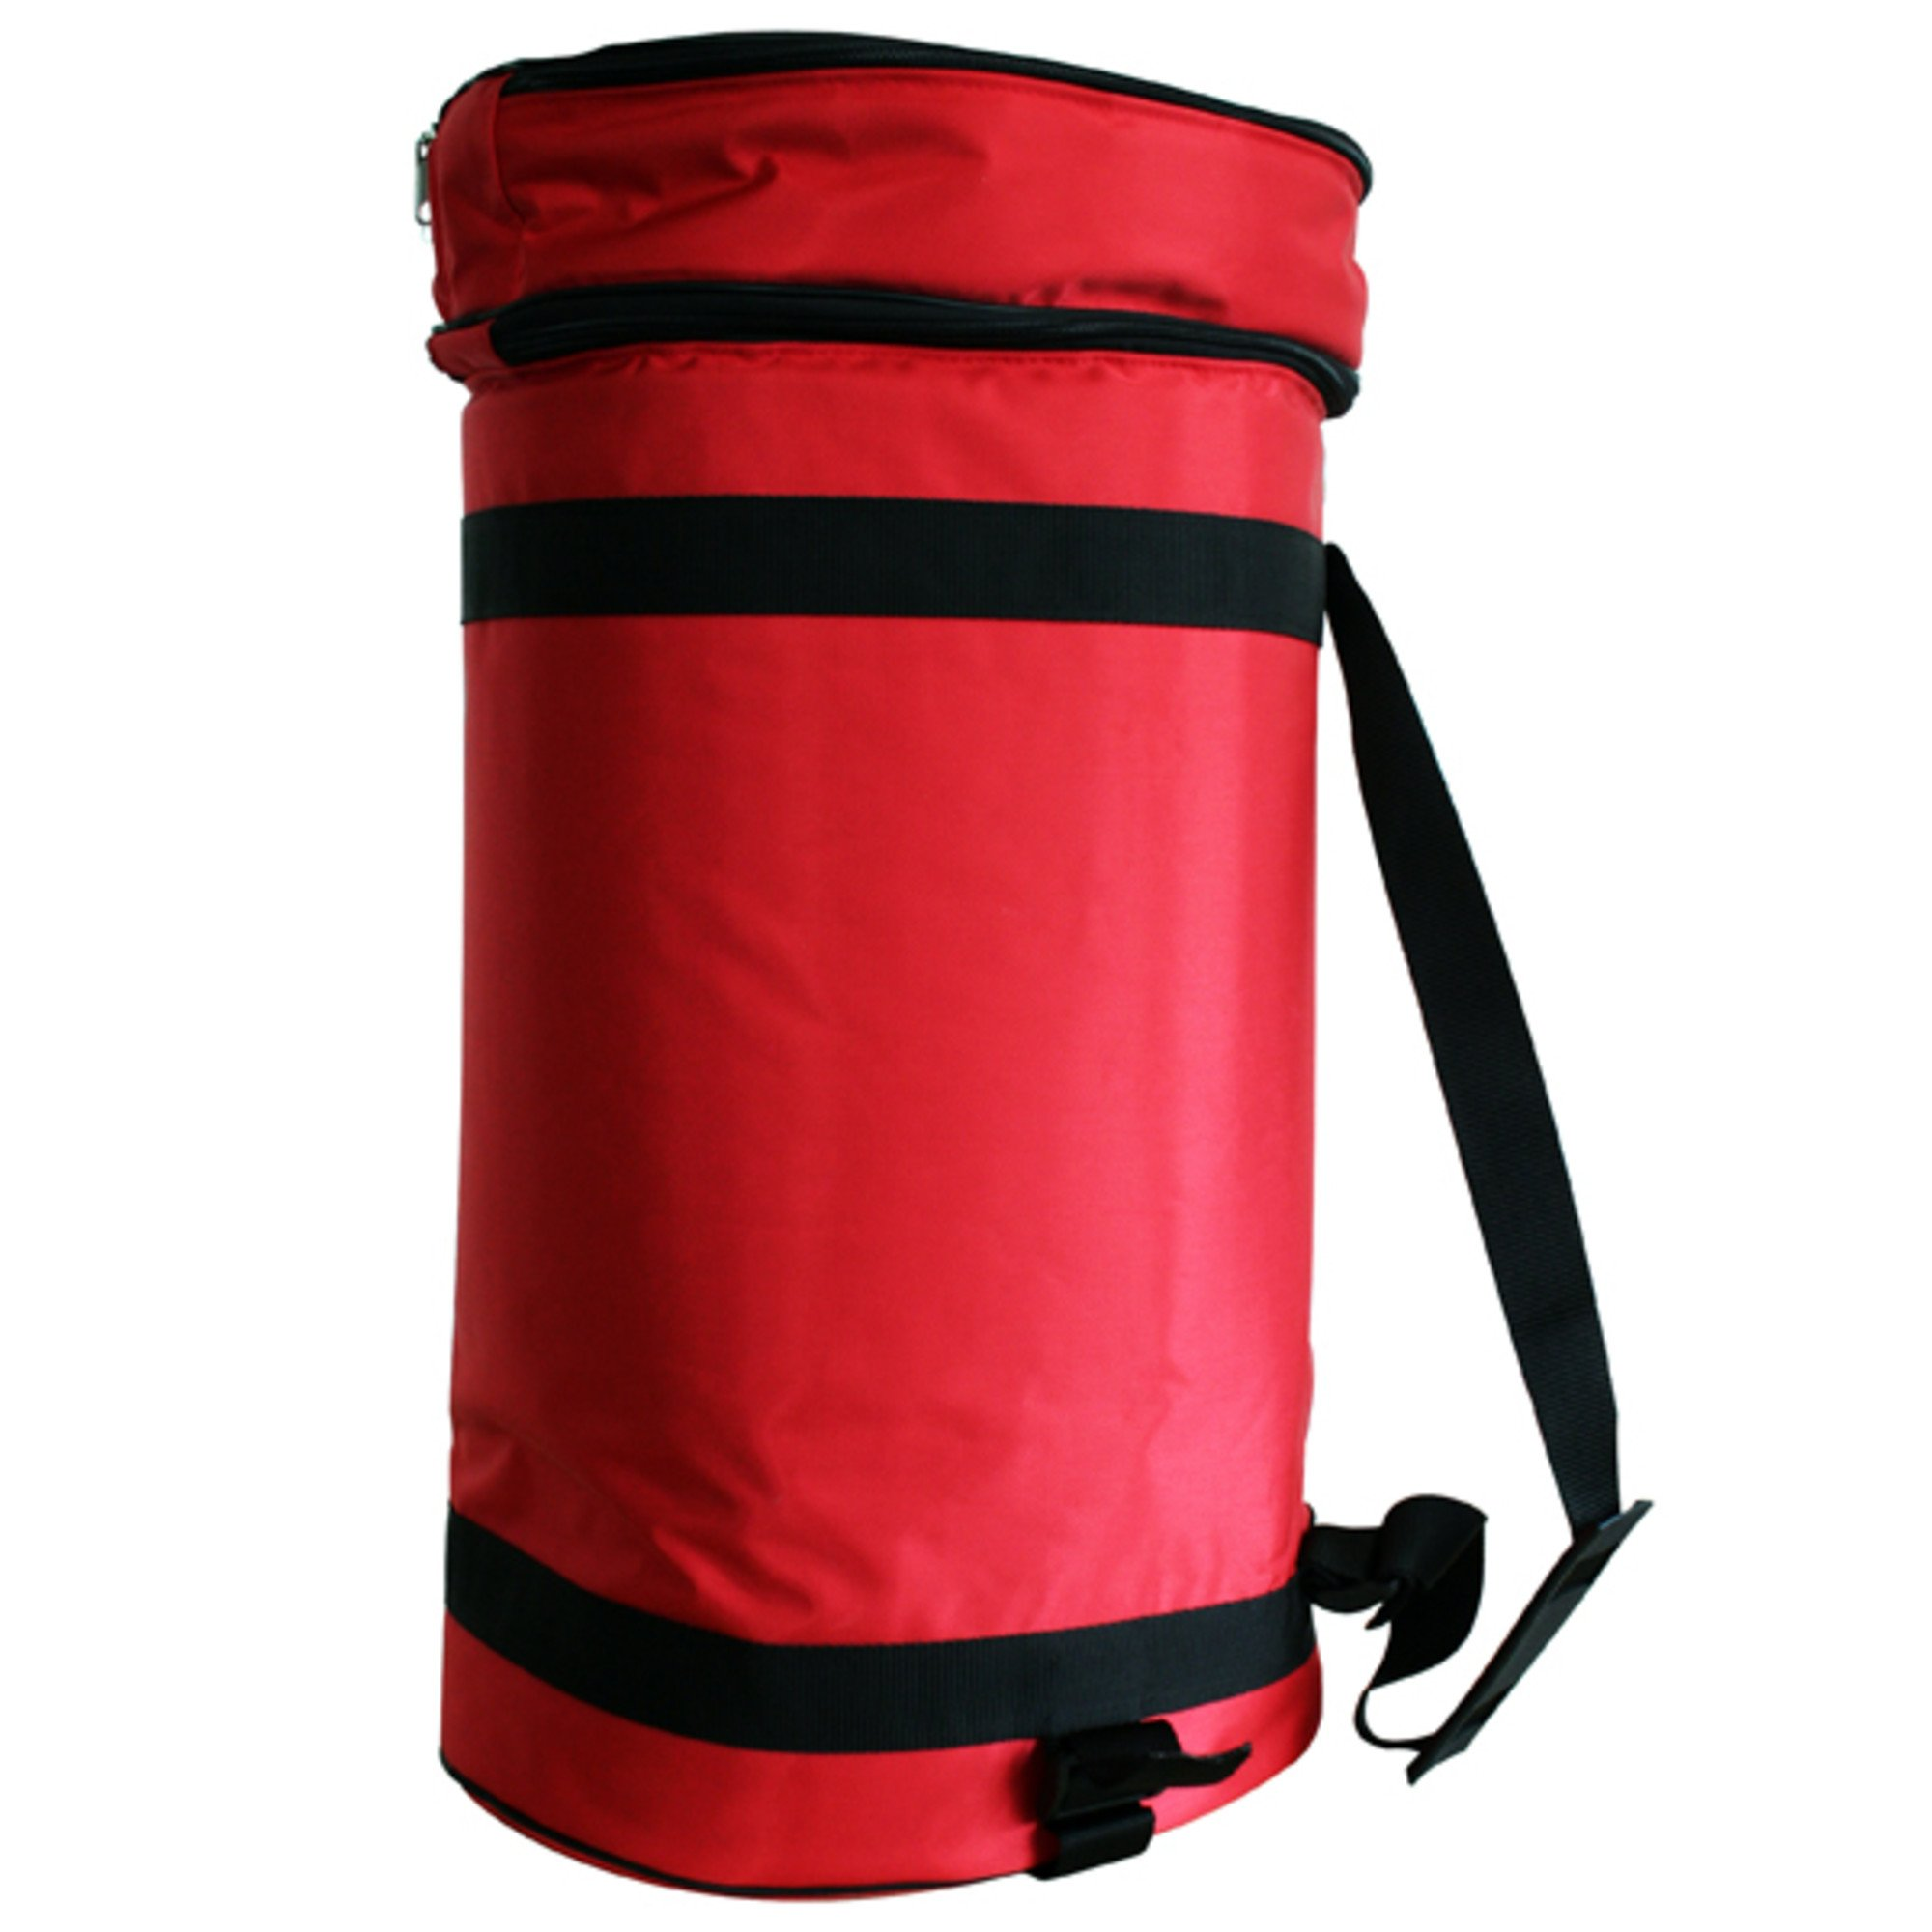 Telescope 30A036Padded Bag for Telescope, Red by Geoptik (Image #1)